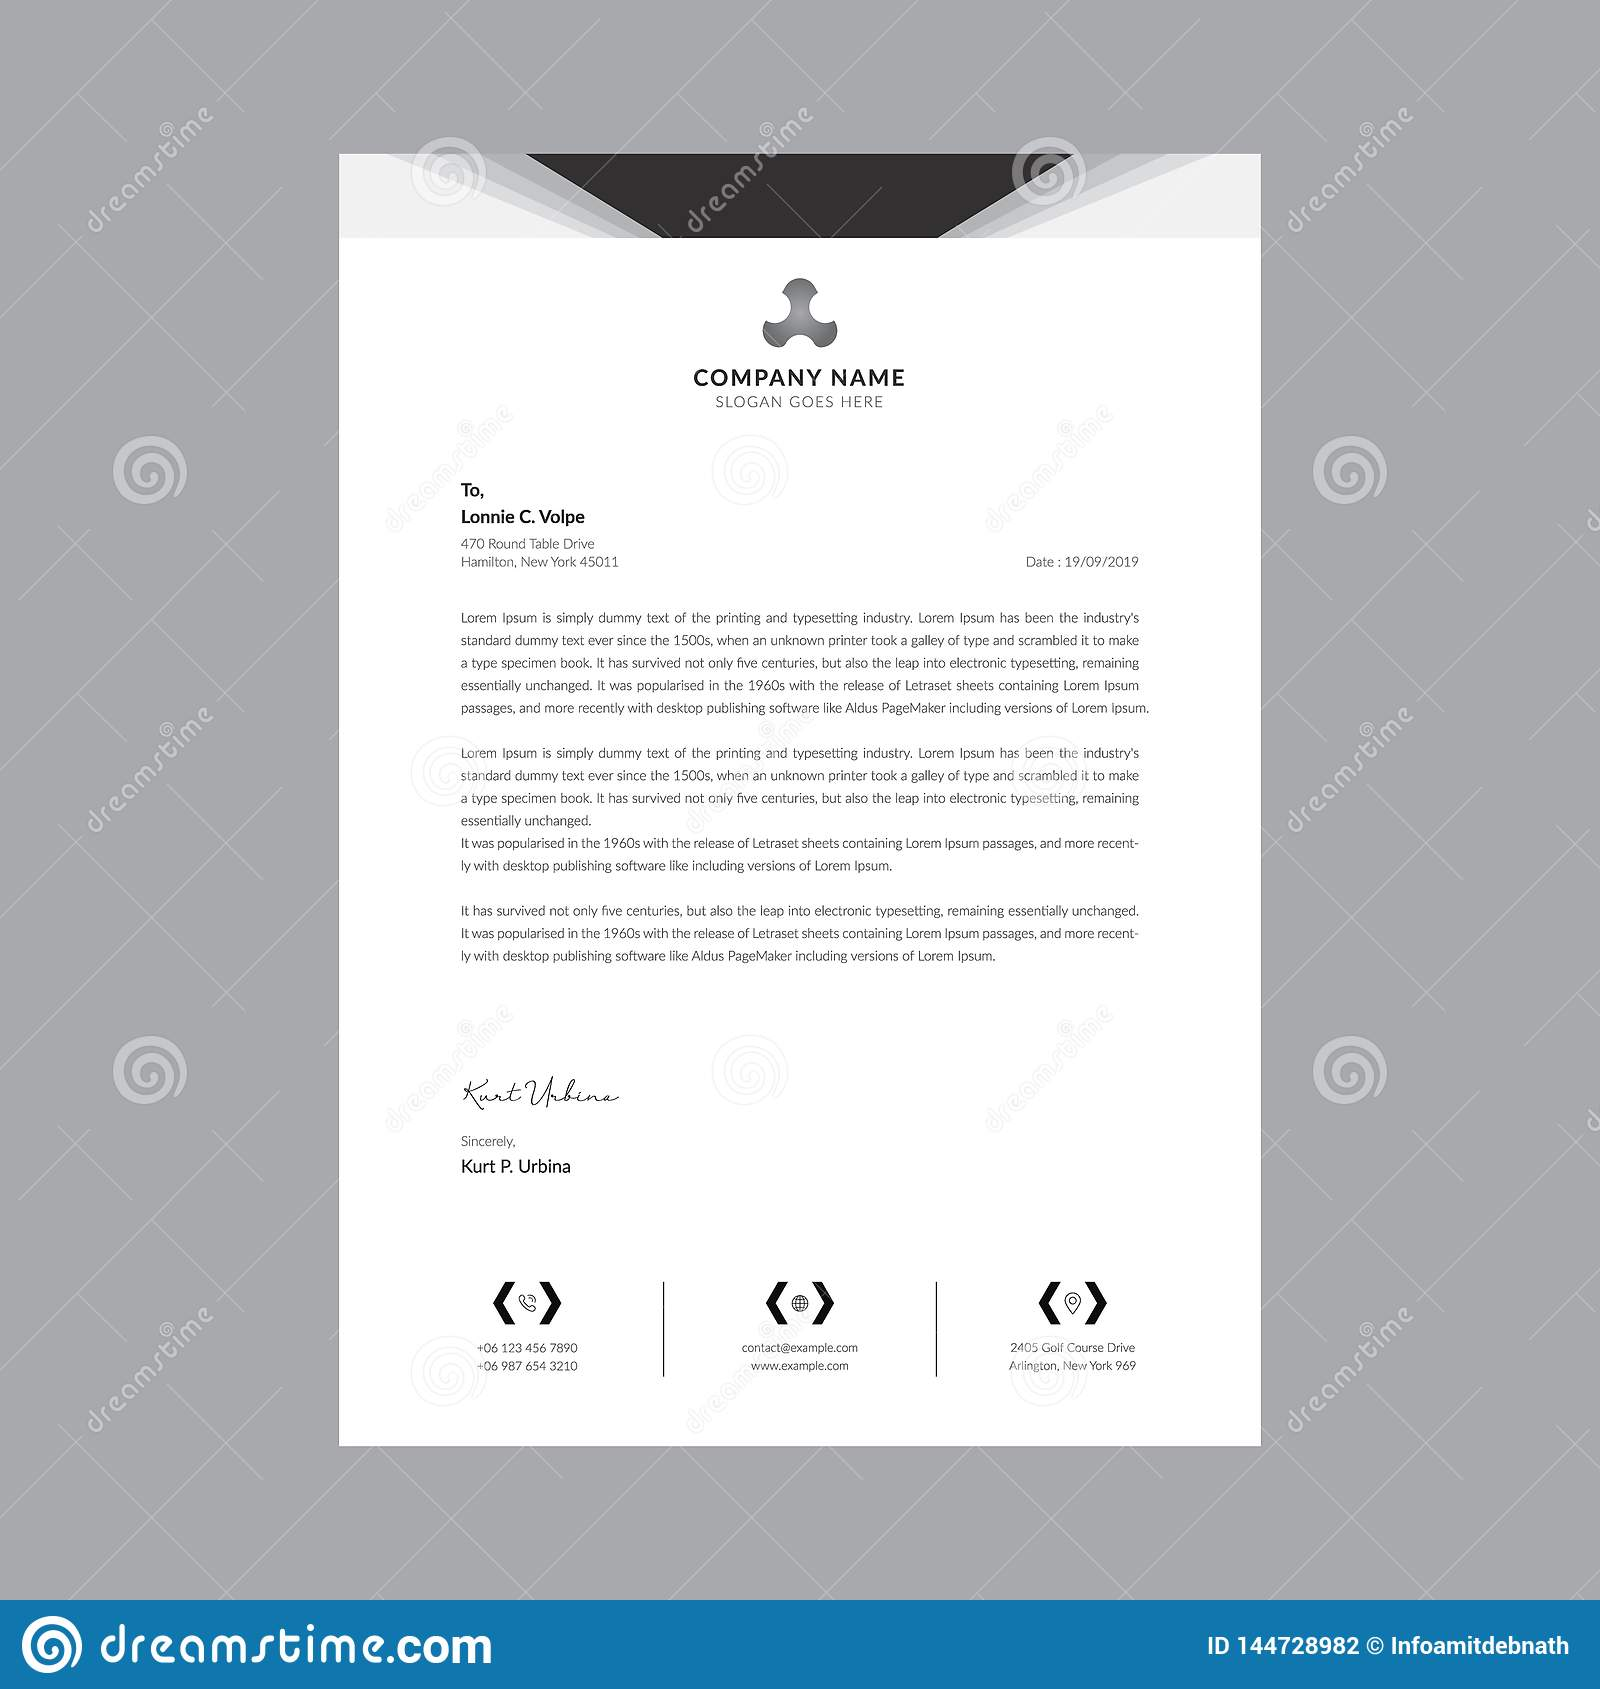 Black and white business letterhead templates